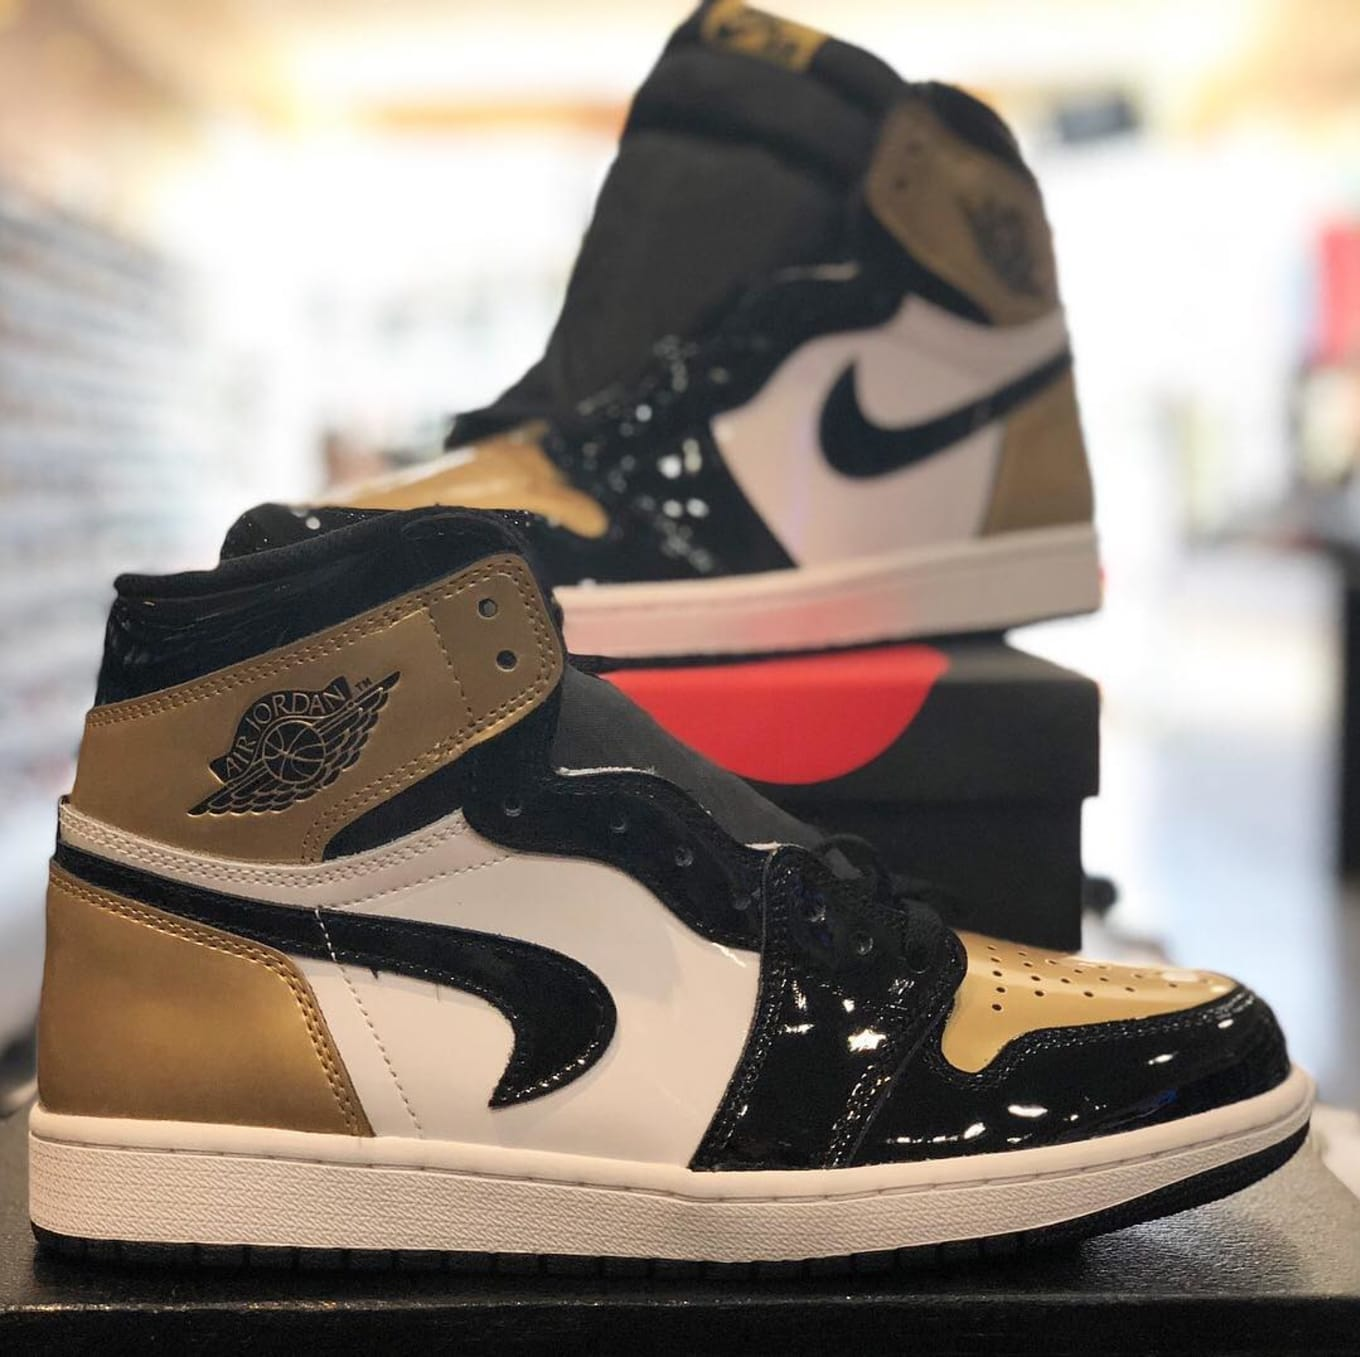 94588793b Air Jordan 1 Gold Toe Upside Down Swoosh Error